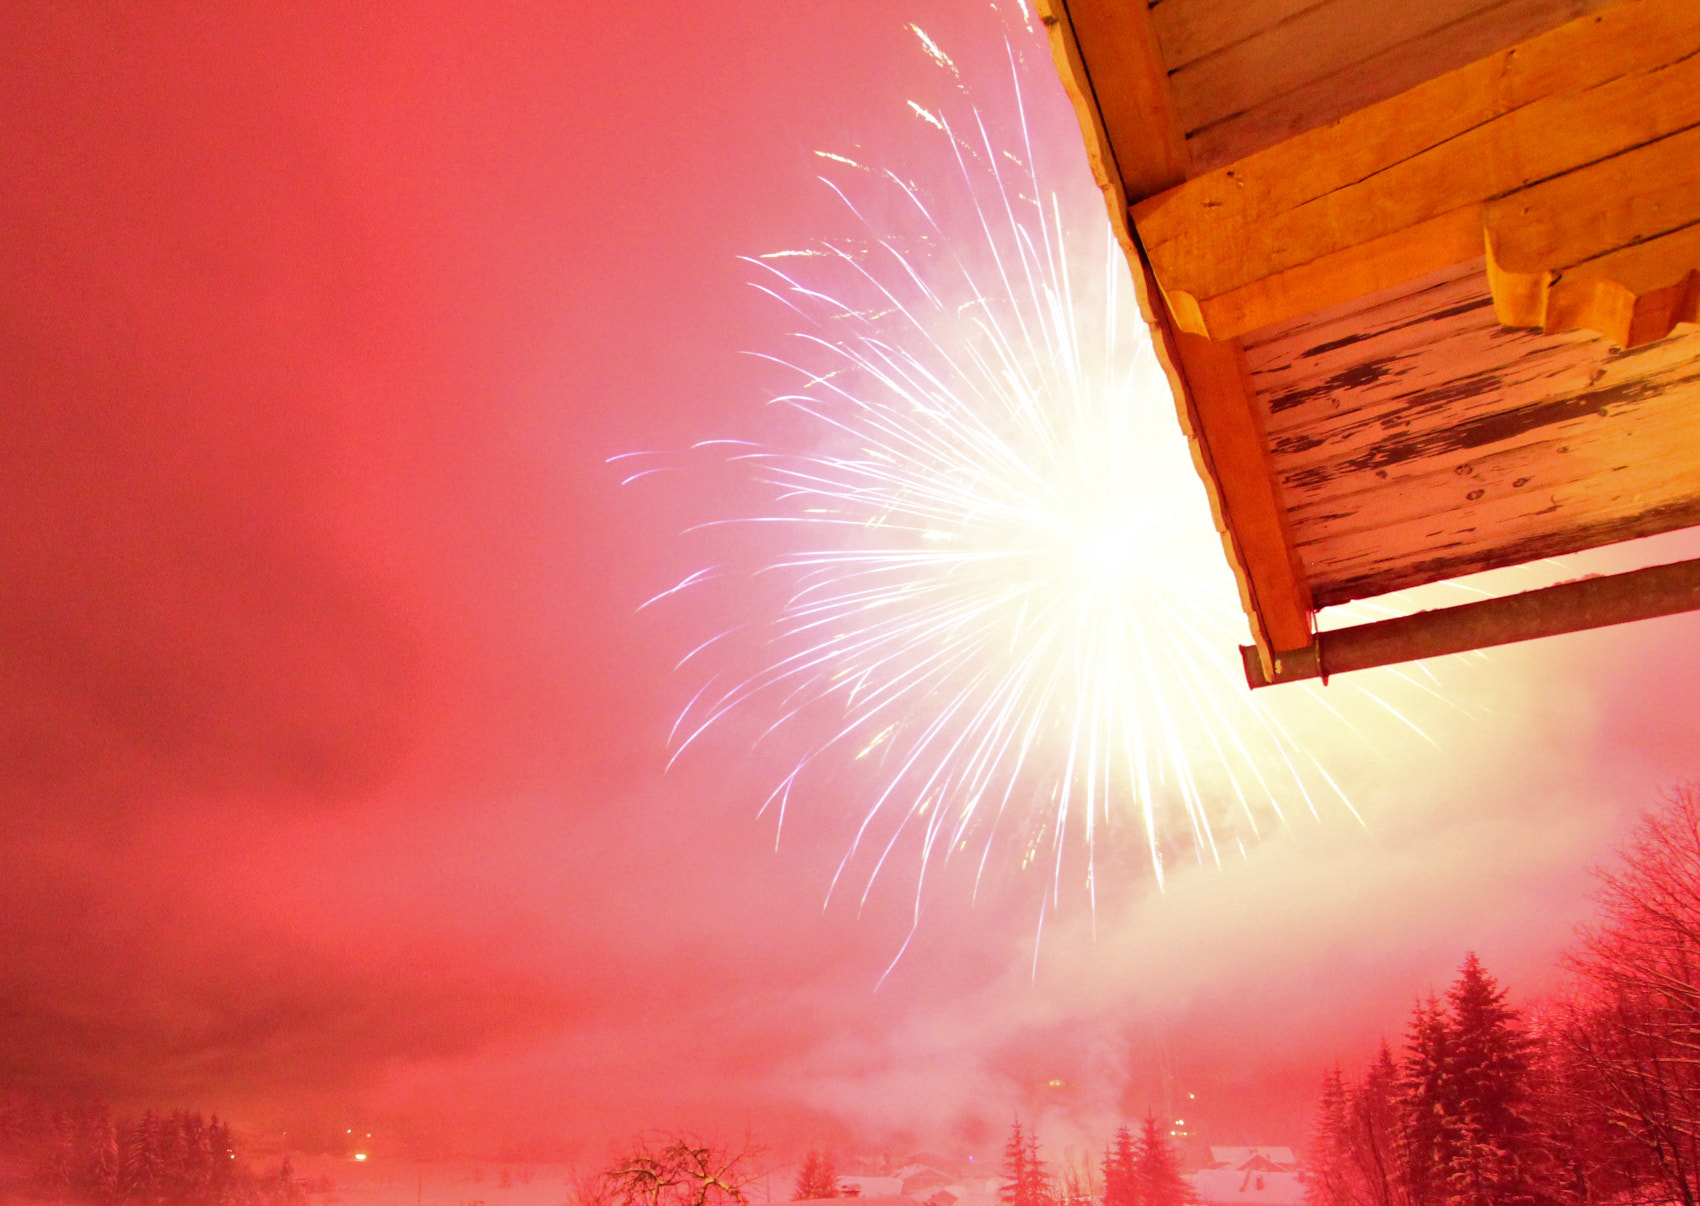 Photograph fireworks 11/12 by Mex Brunner on 500px